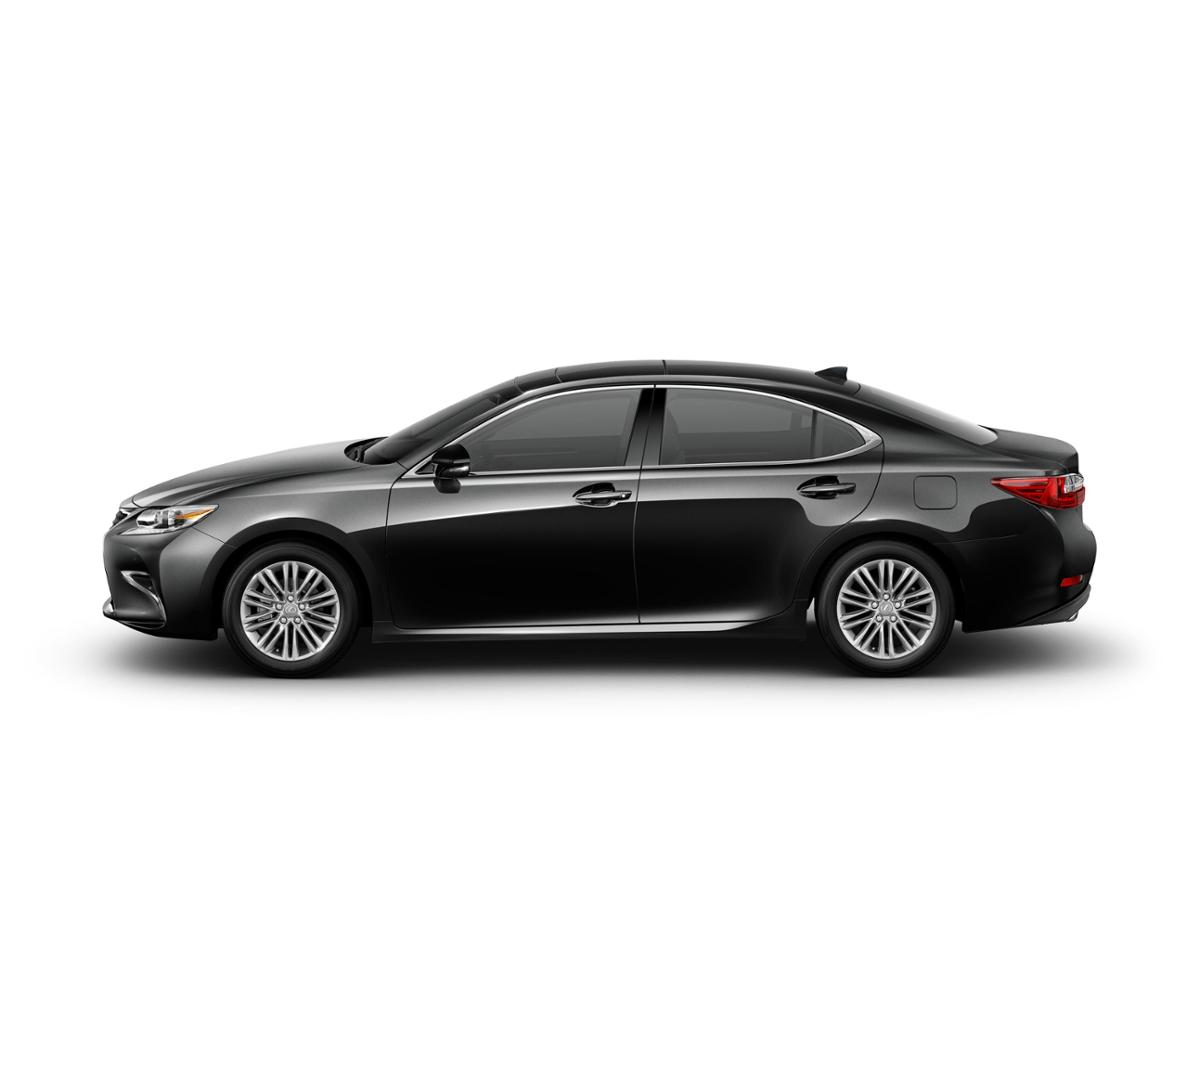 2018 Lexus ES 350 Vehicle Photo in Mission Viejo, CA 92692